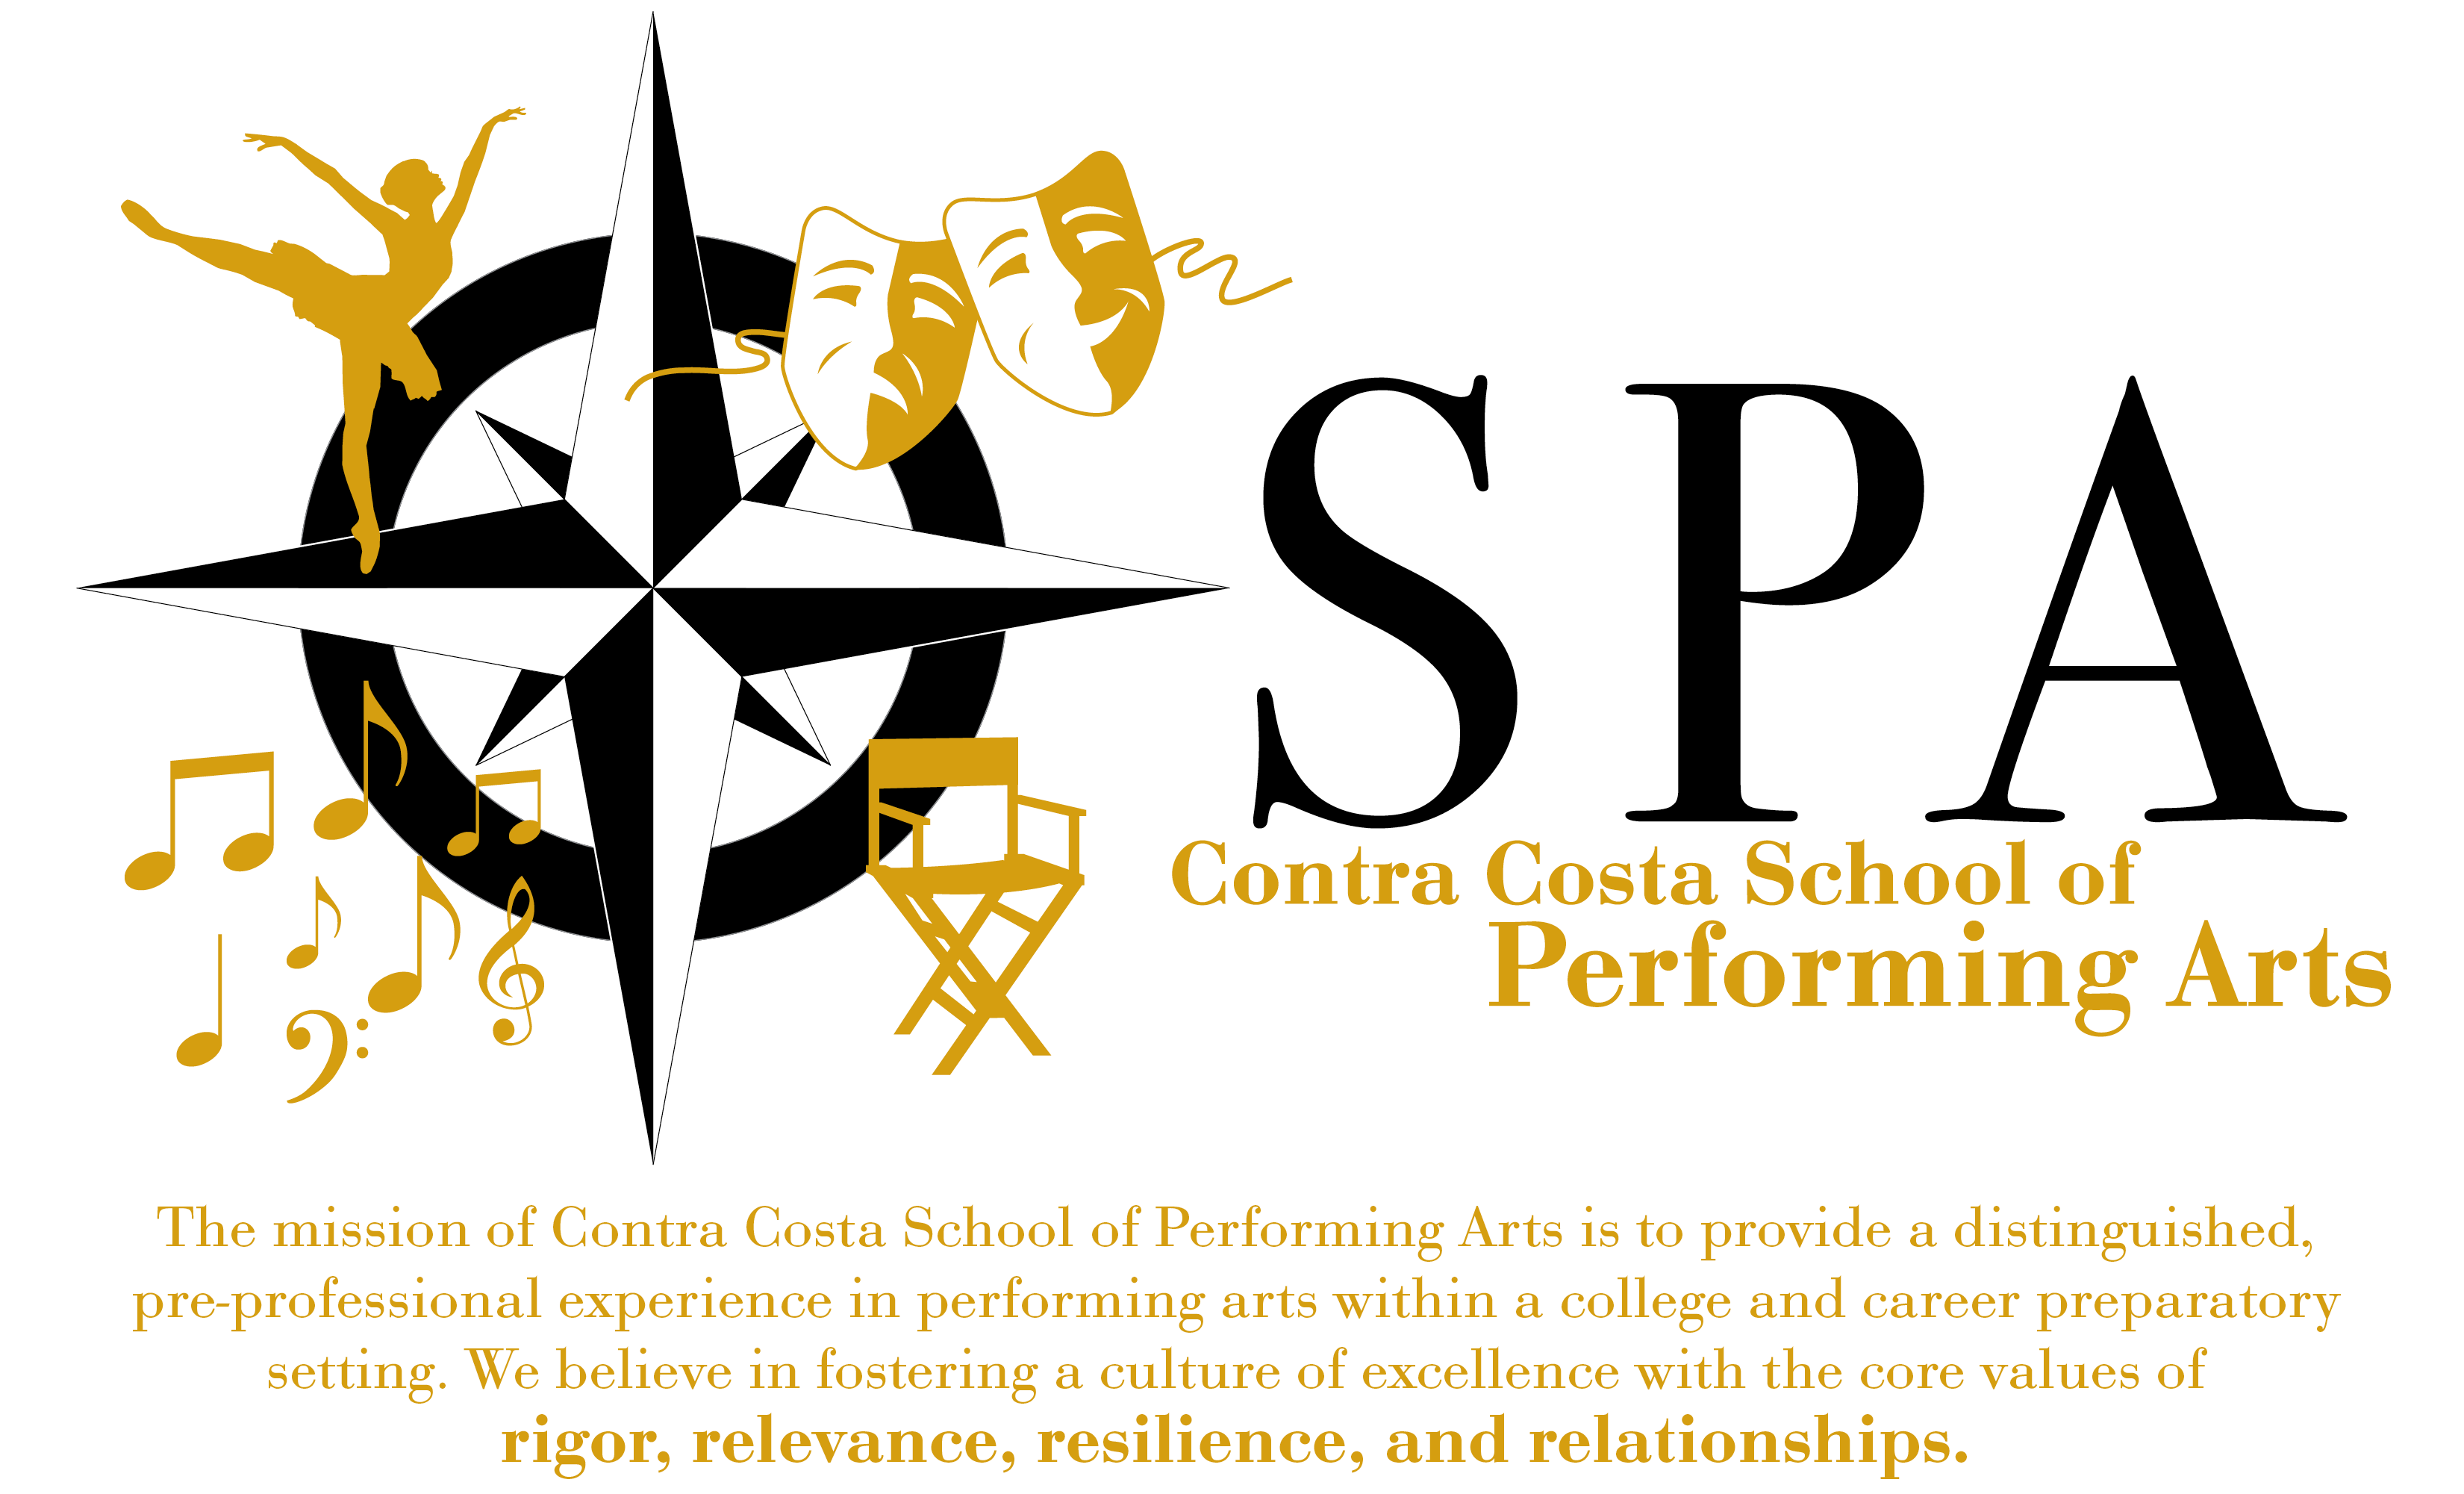 SPA Contra Costa School of Performing Arts